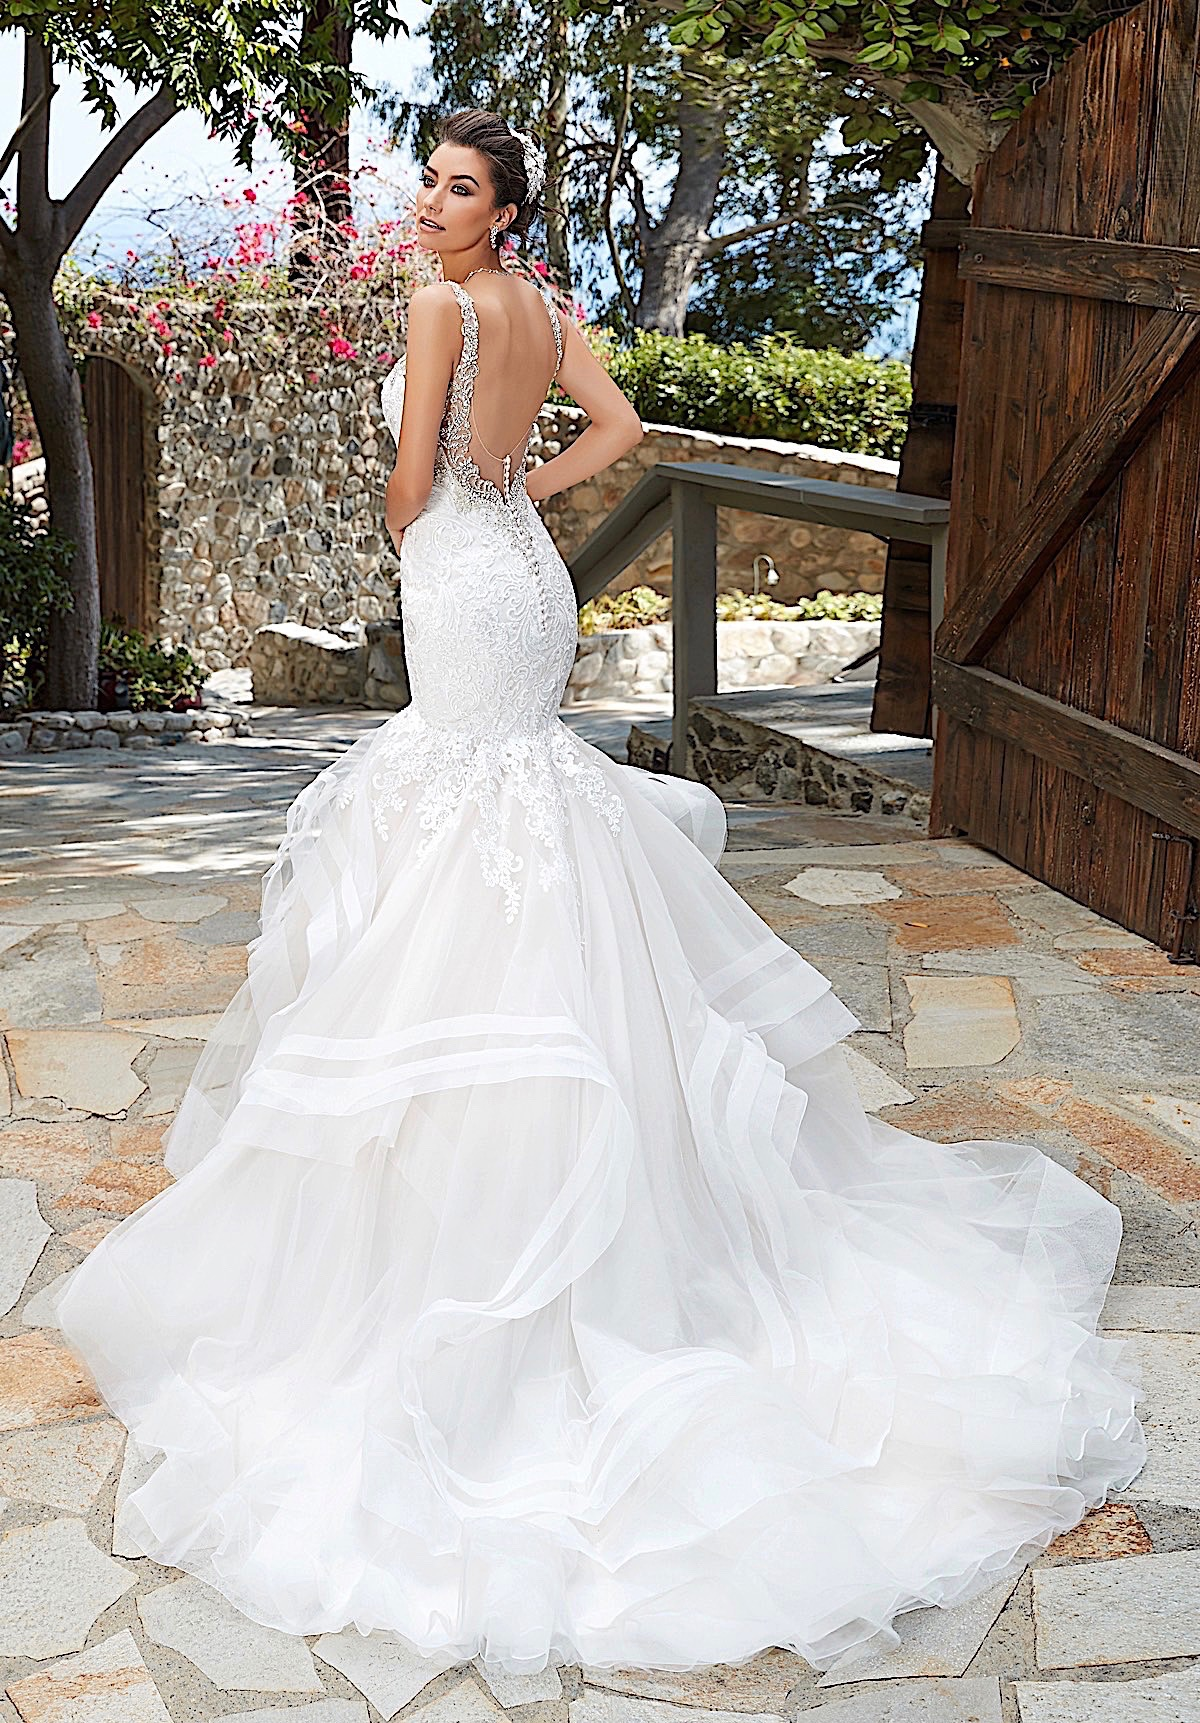 Bridal Gowns Gold Coast